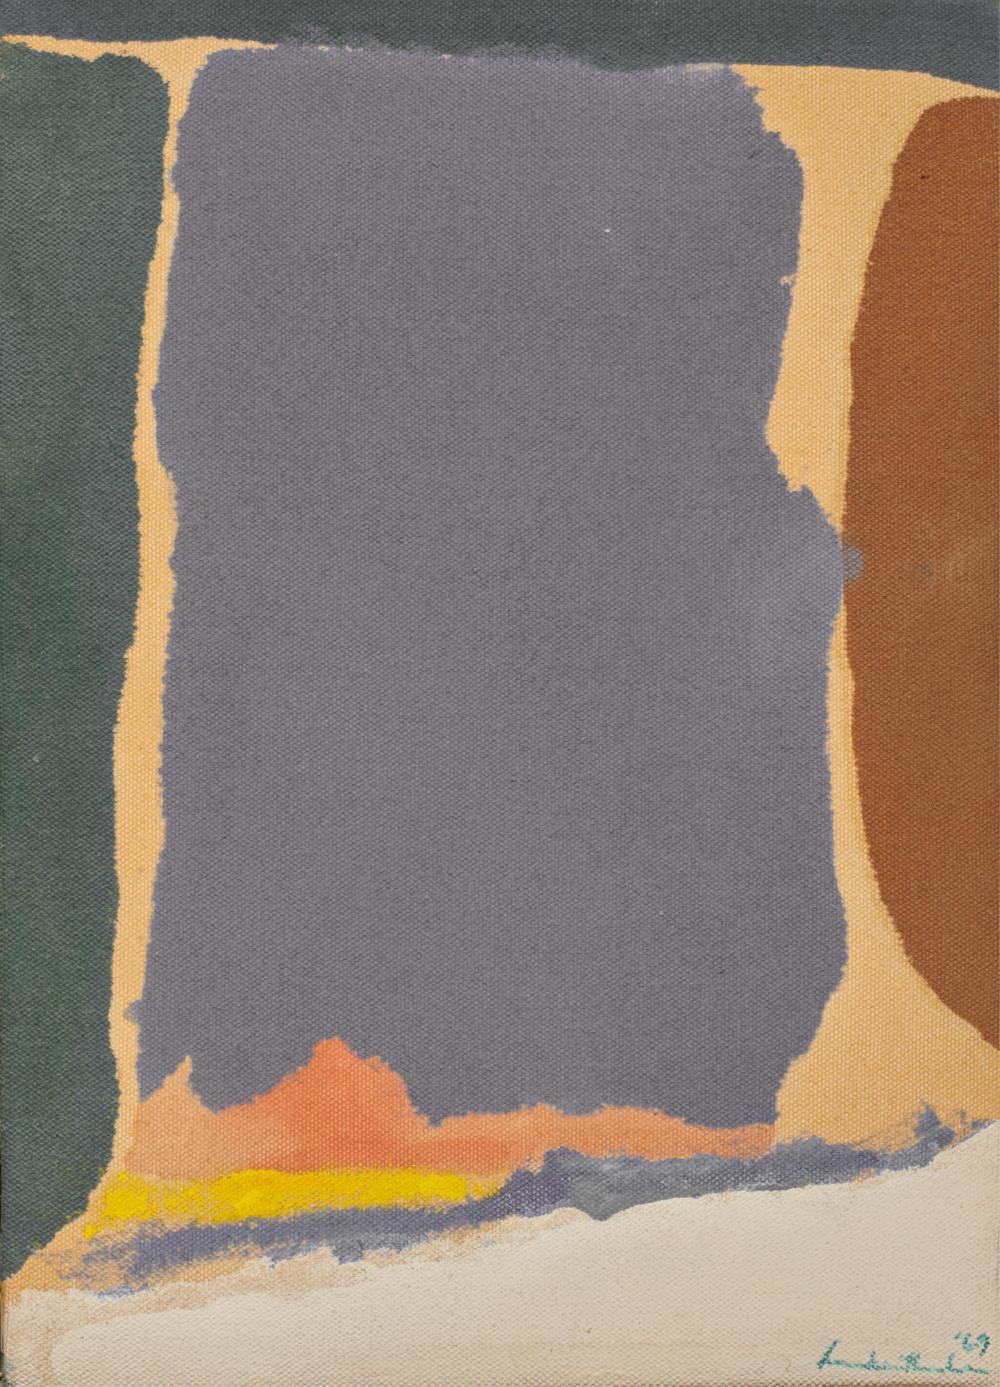 HELEN FRANKENTHALER, American 1928-2011, Untitled, 1969, acrylic on canvas, 11 x 8 in., housed in a Kulicke traveling frame: 12 5/8 x 9 5/8 in.